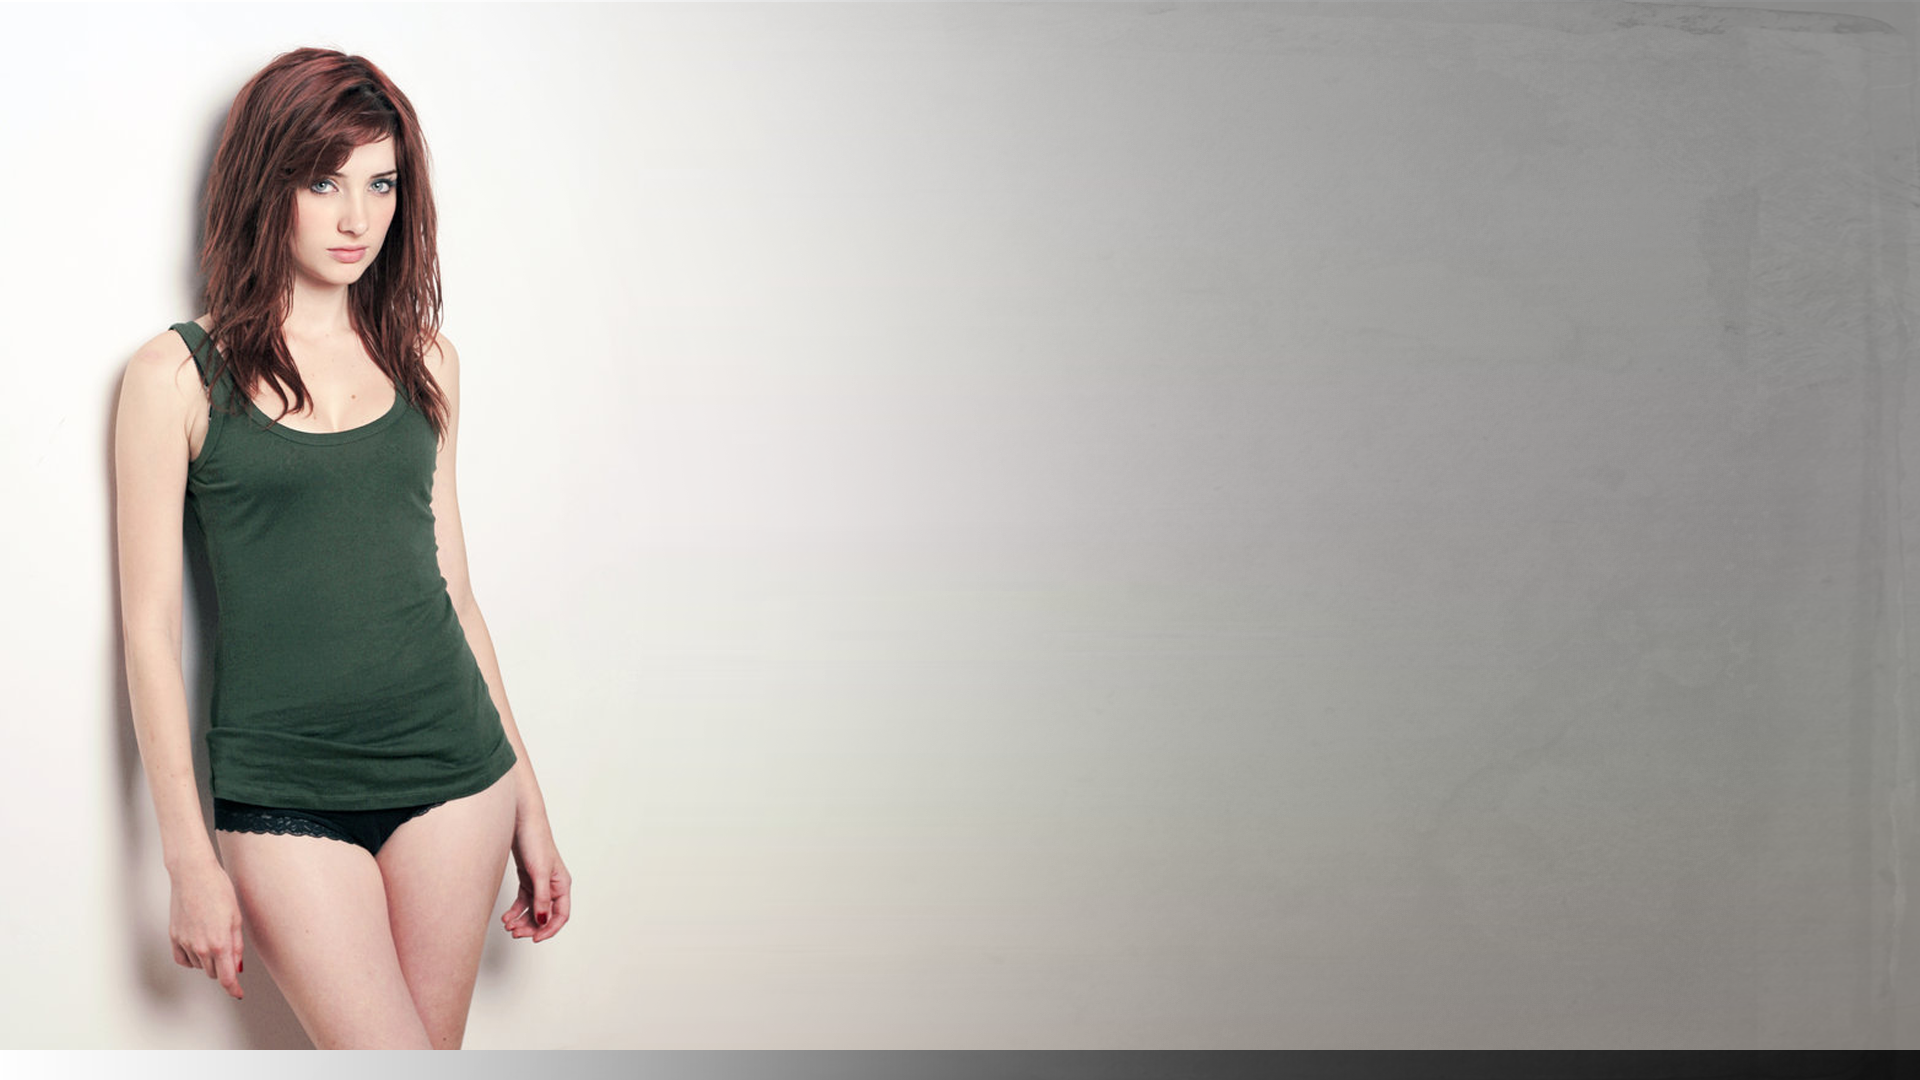 susan coffey full hd wallpaper and background image | 1920x1080 | id